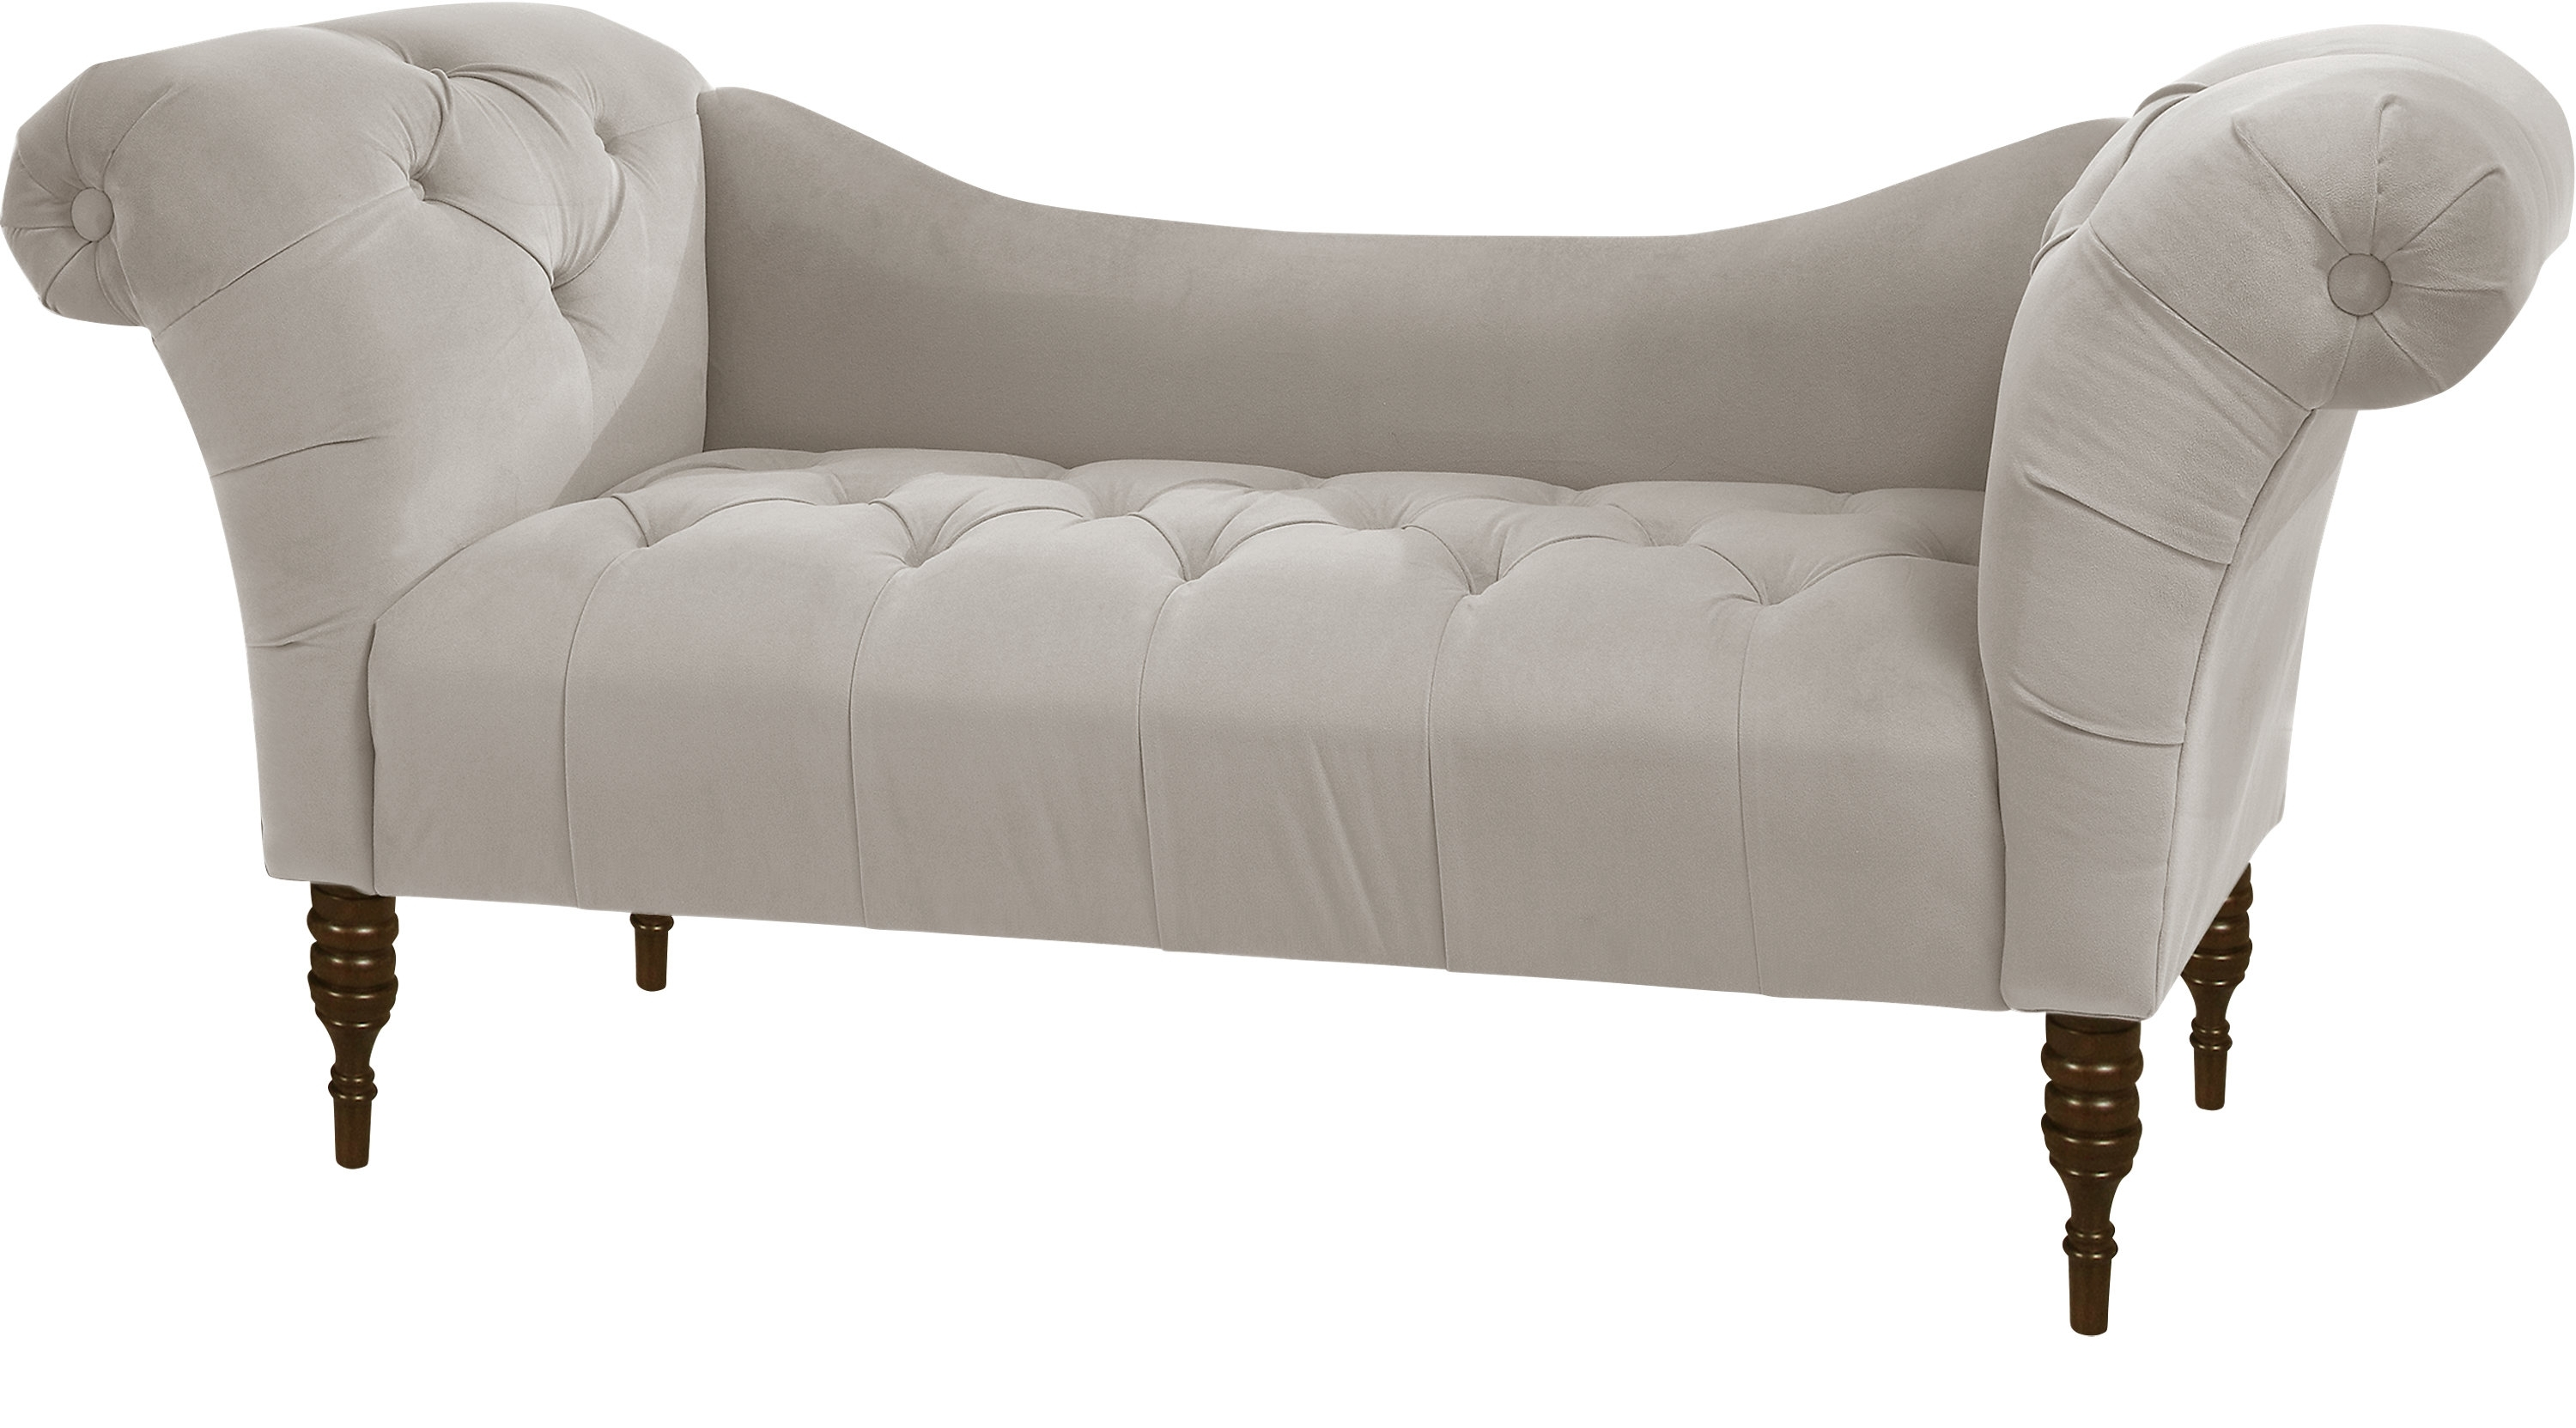 Grey Chaises – Grey Chaise Lounge Sofas With Regard To Well Known Grey Chaises (View 9 of 15)